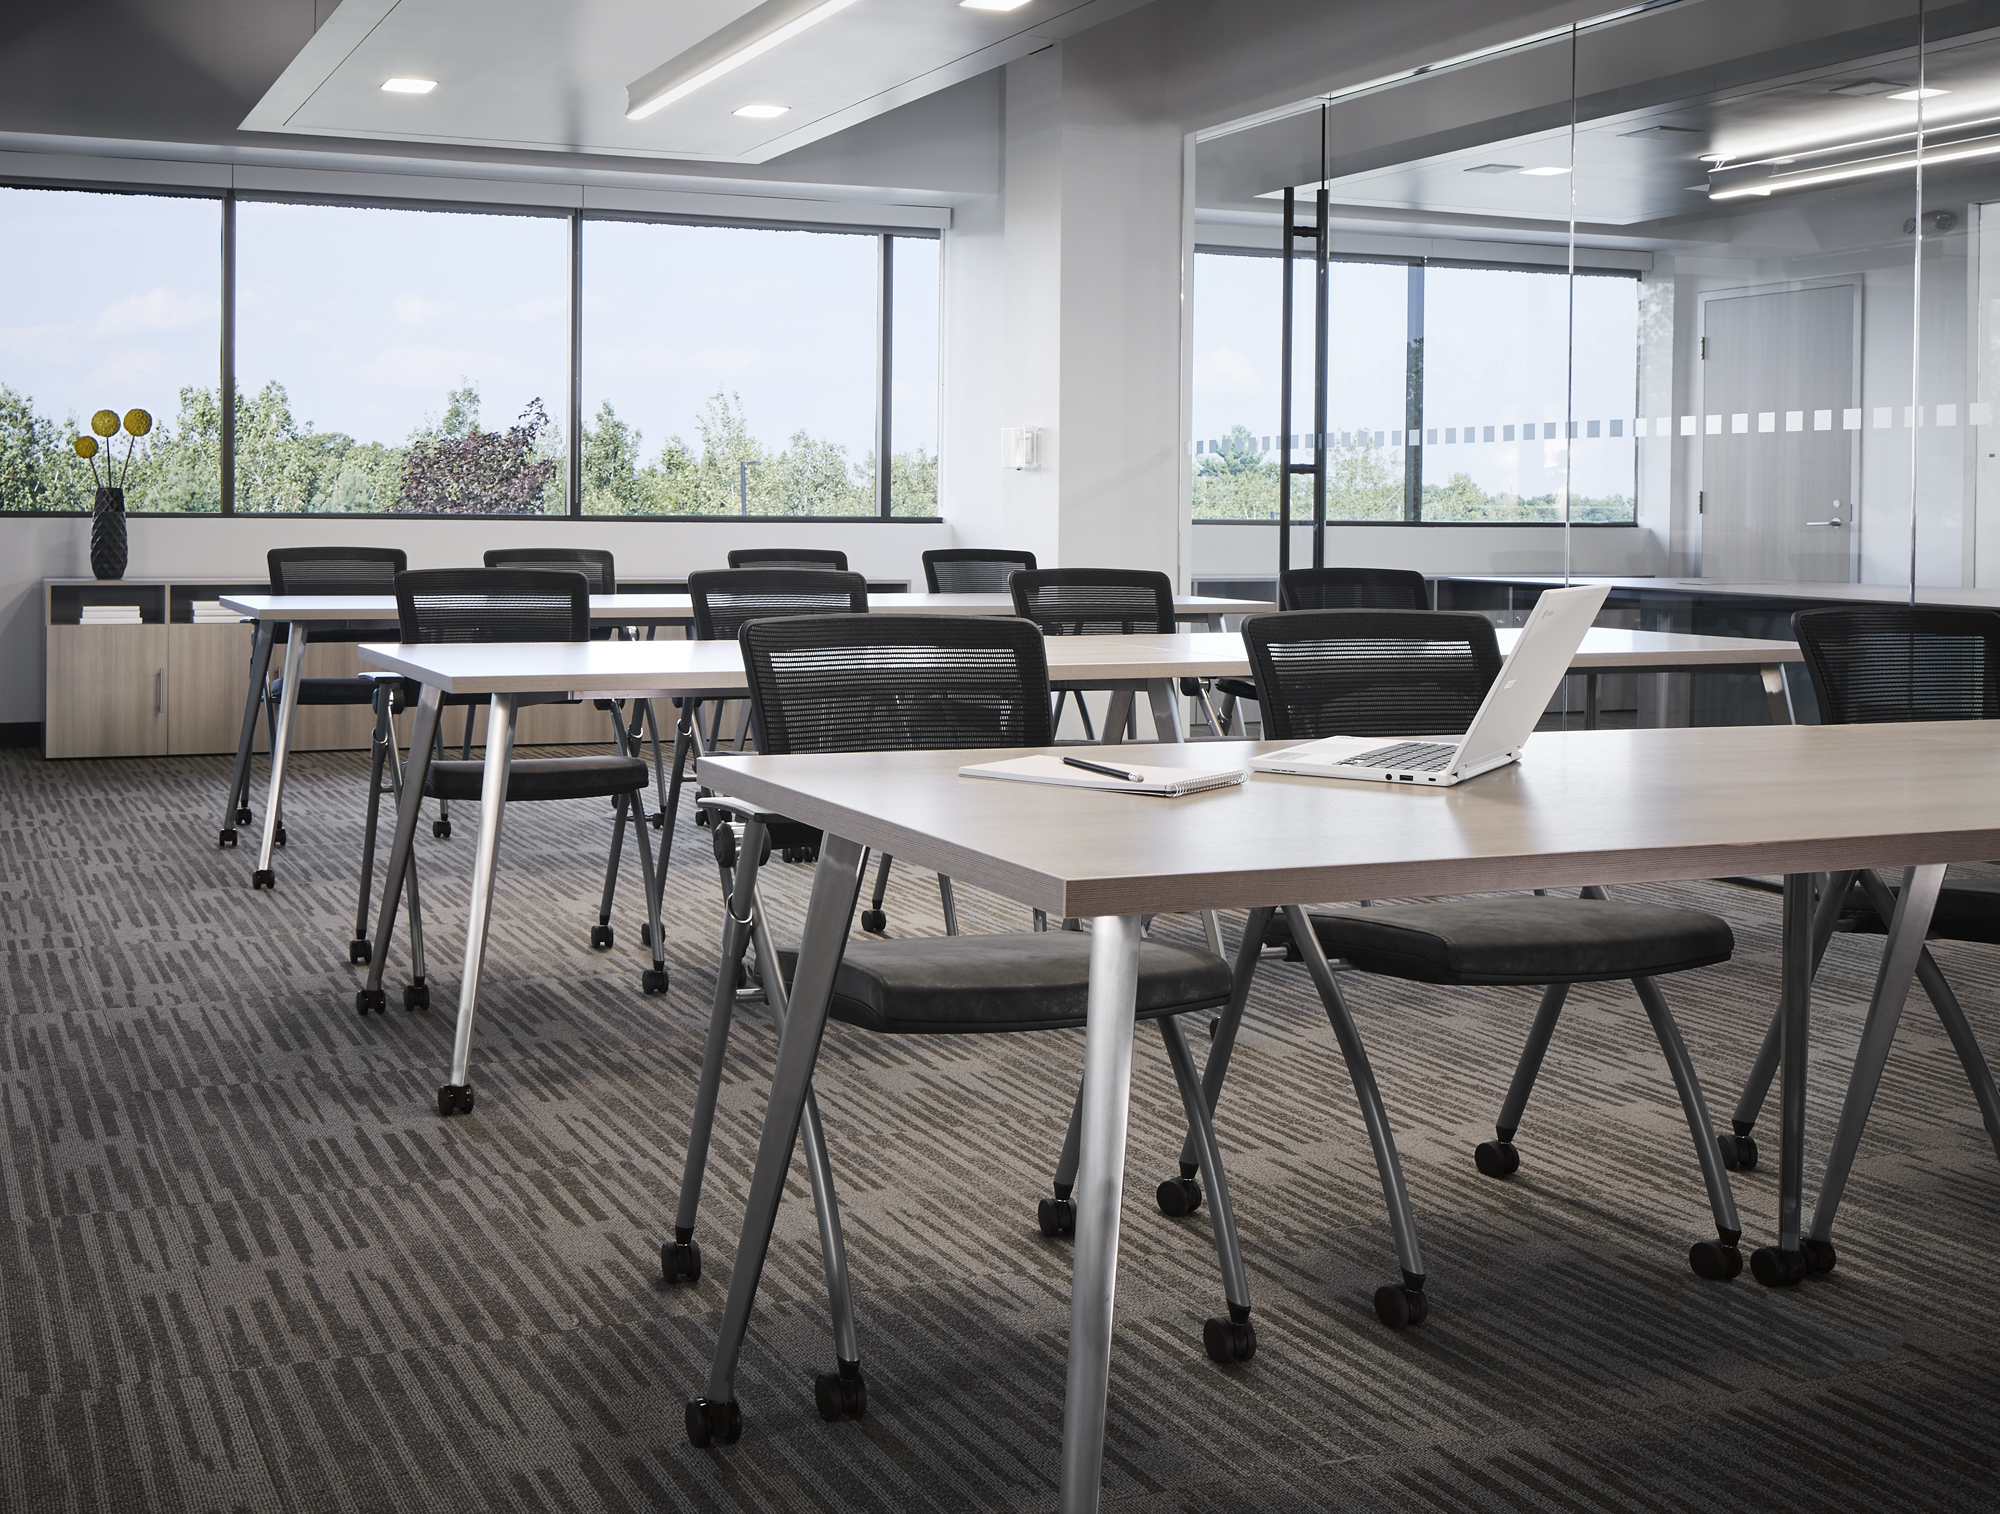 Day-to-Day Training Tables with Stow Seating